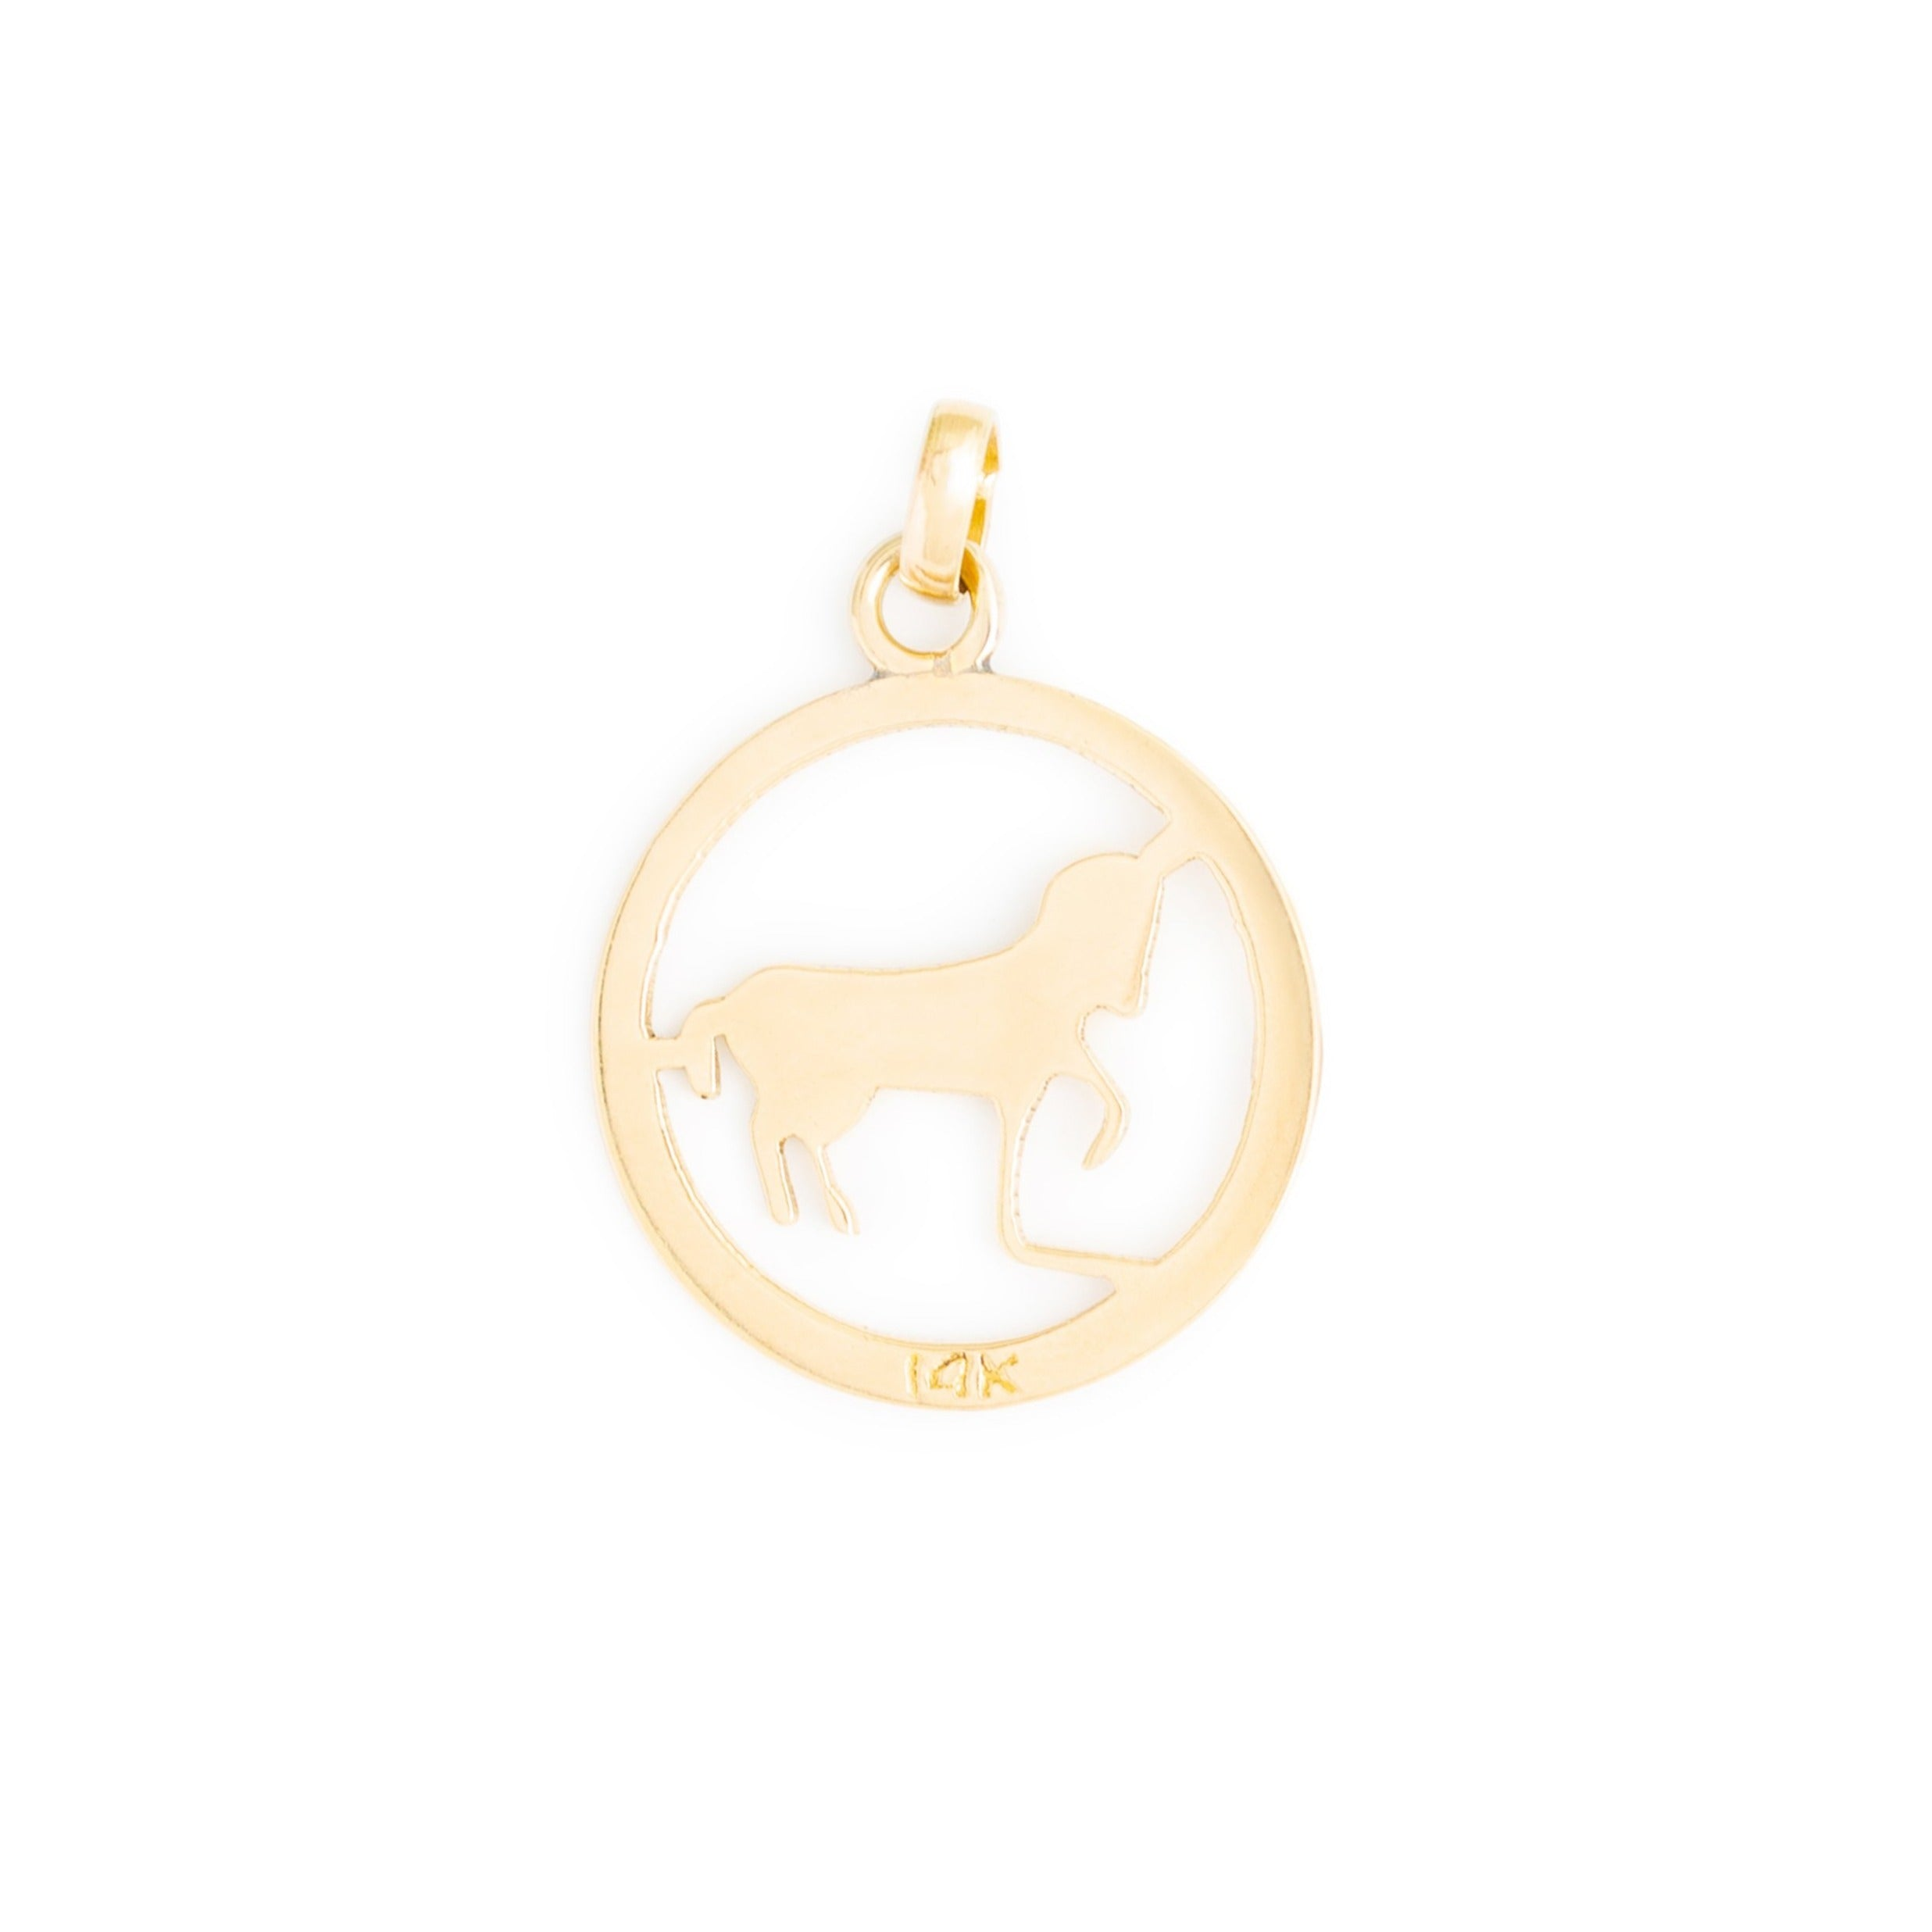 Aries 14k Gold Zodiac Charm